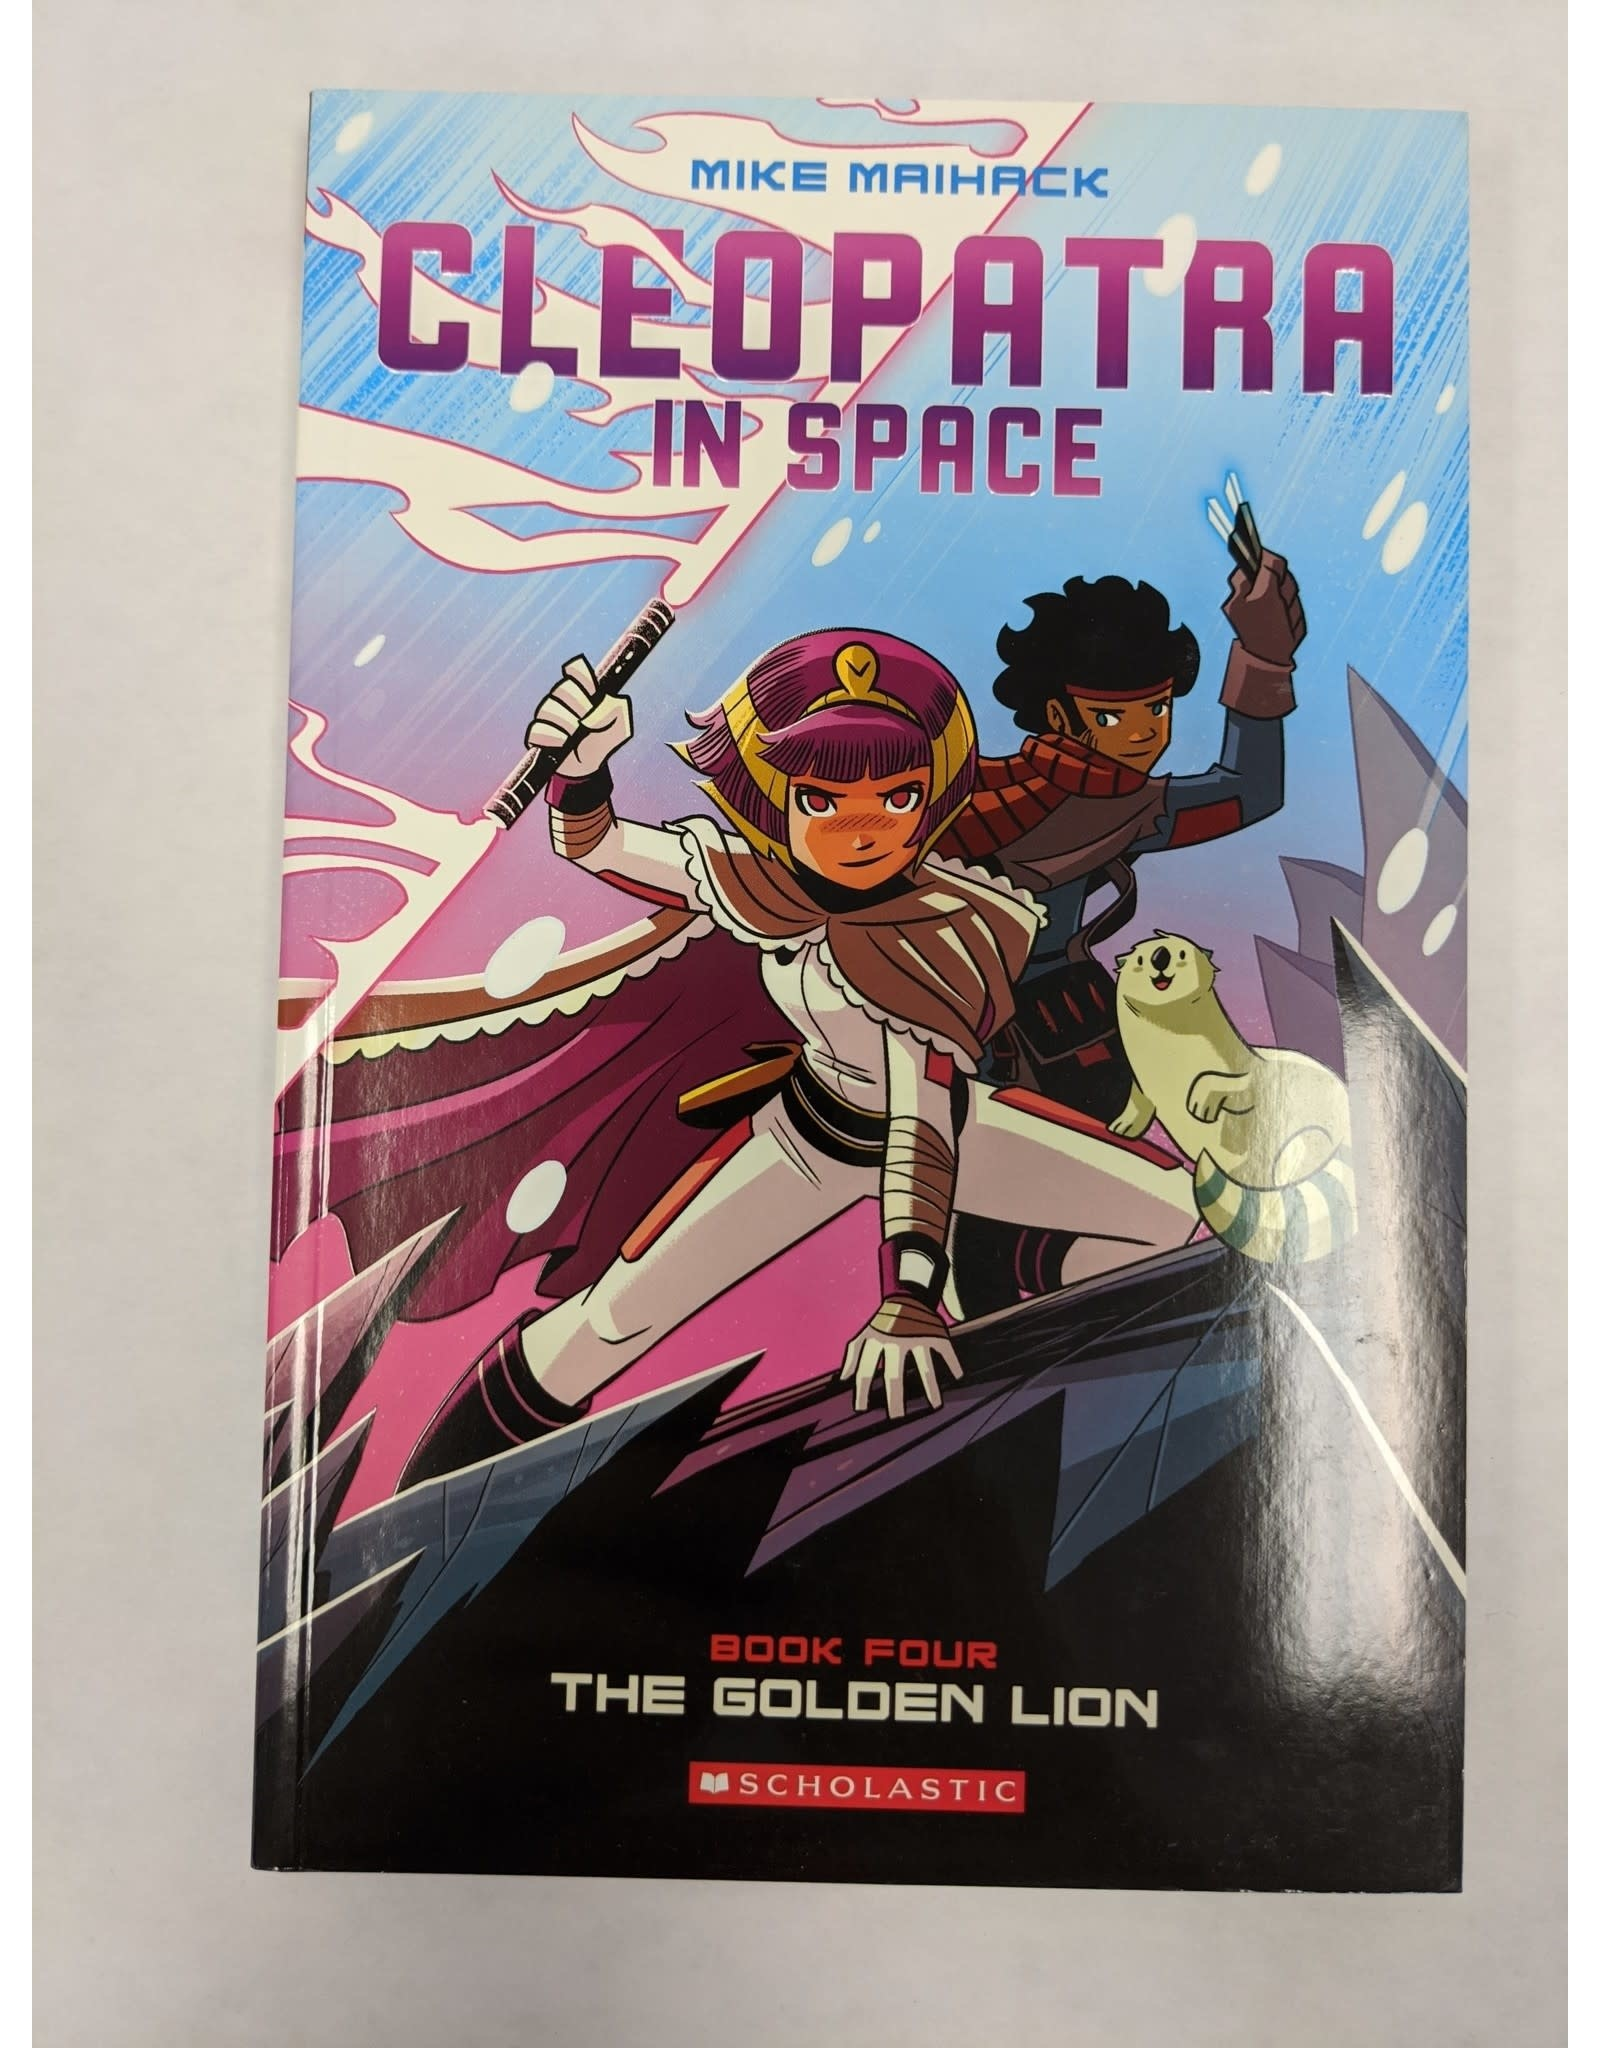 GRAPHIX CLEOPATRA IN SPACE GN VOL 04 GOLDEN LION